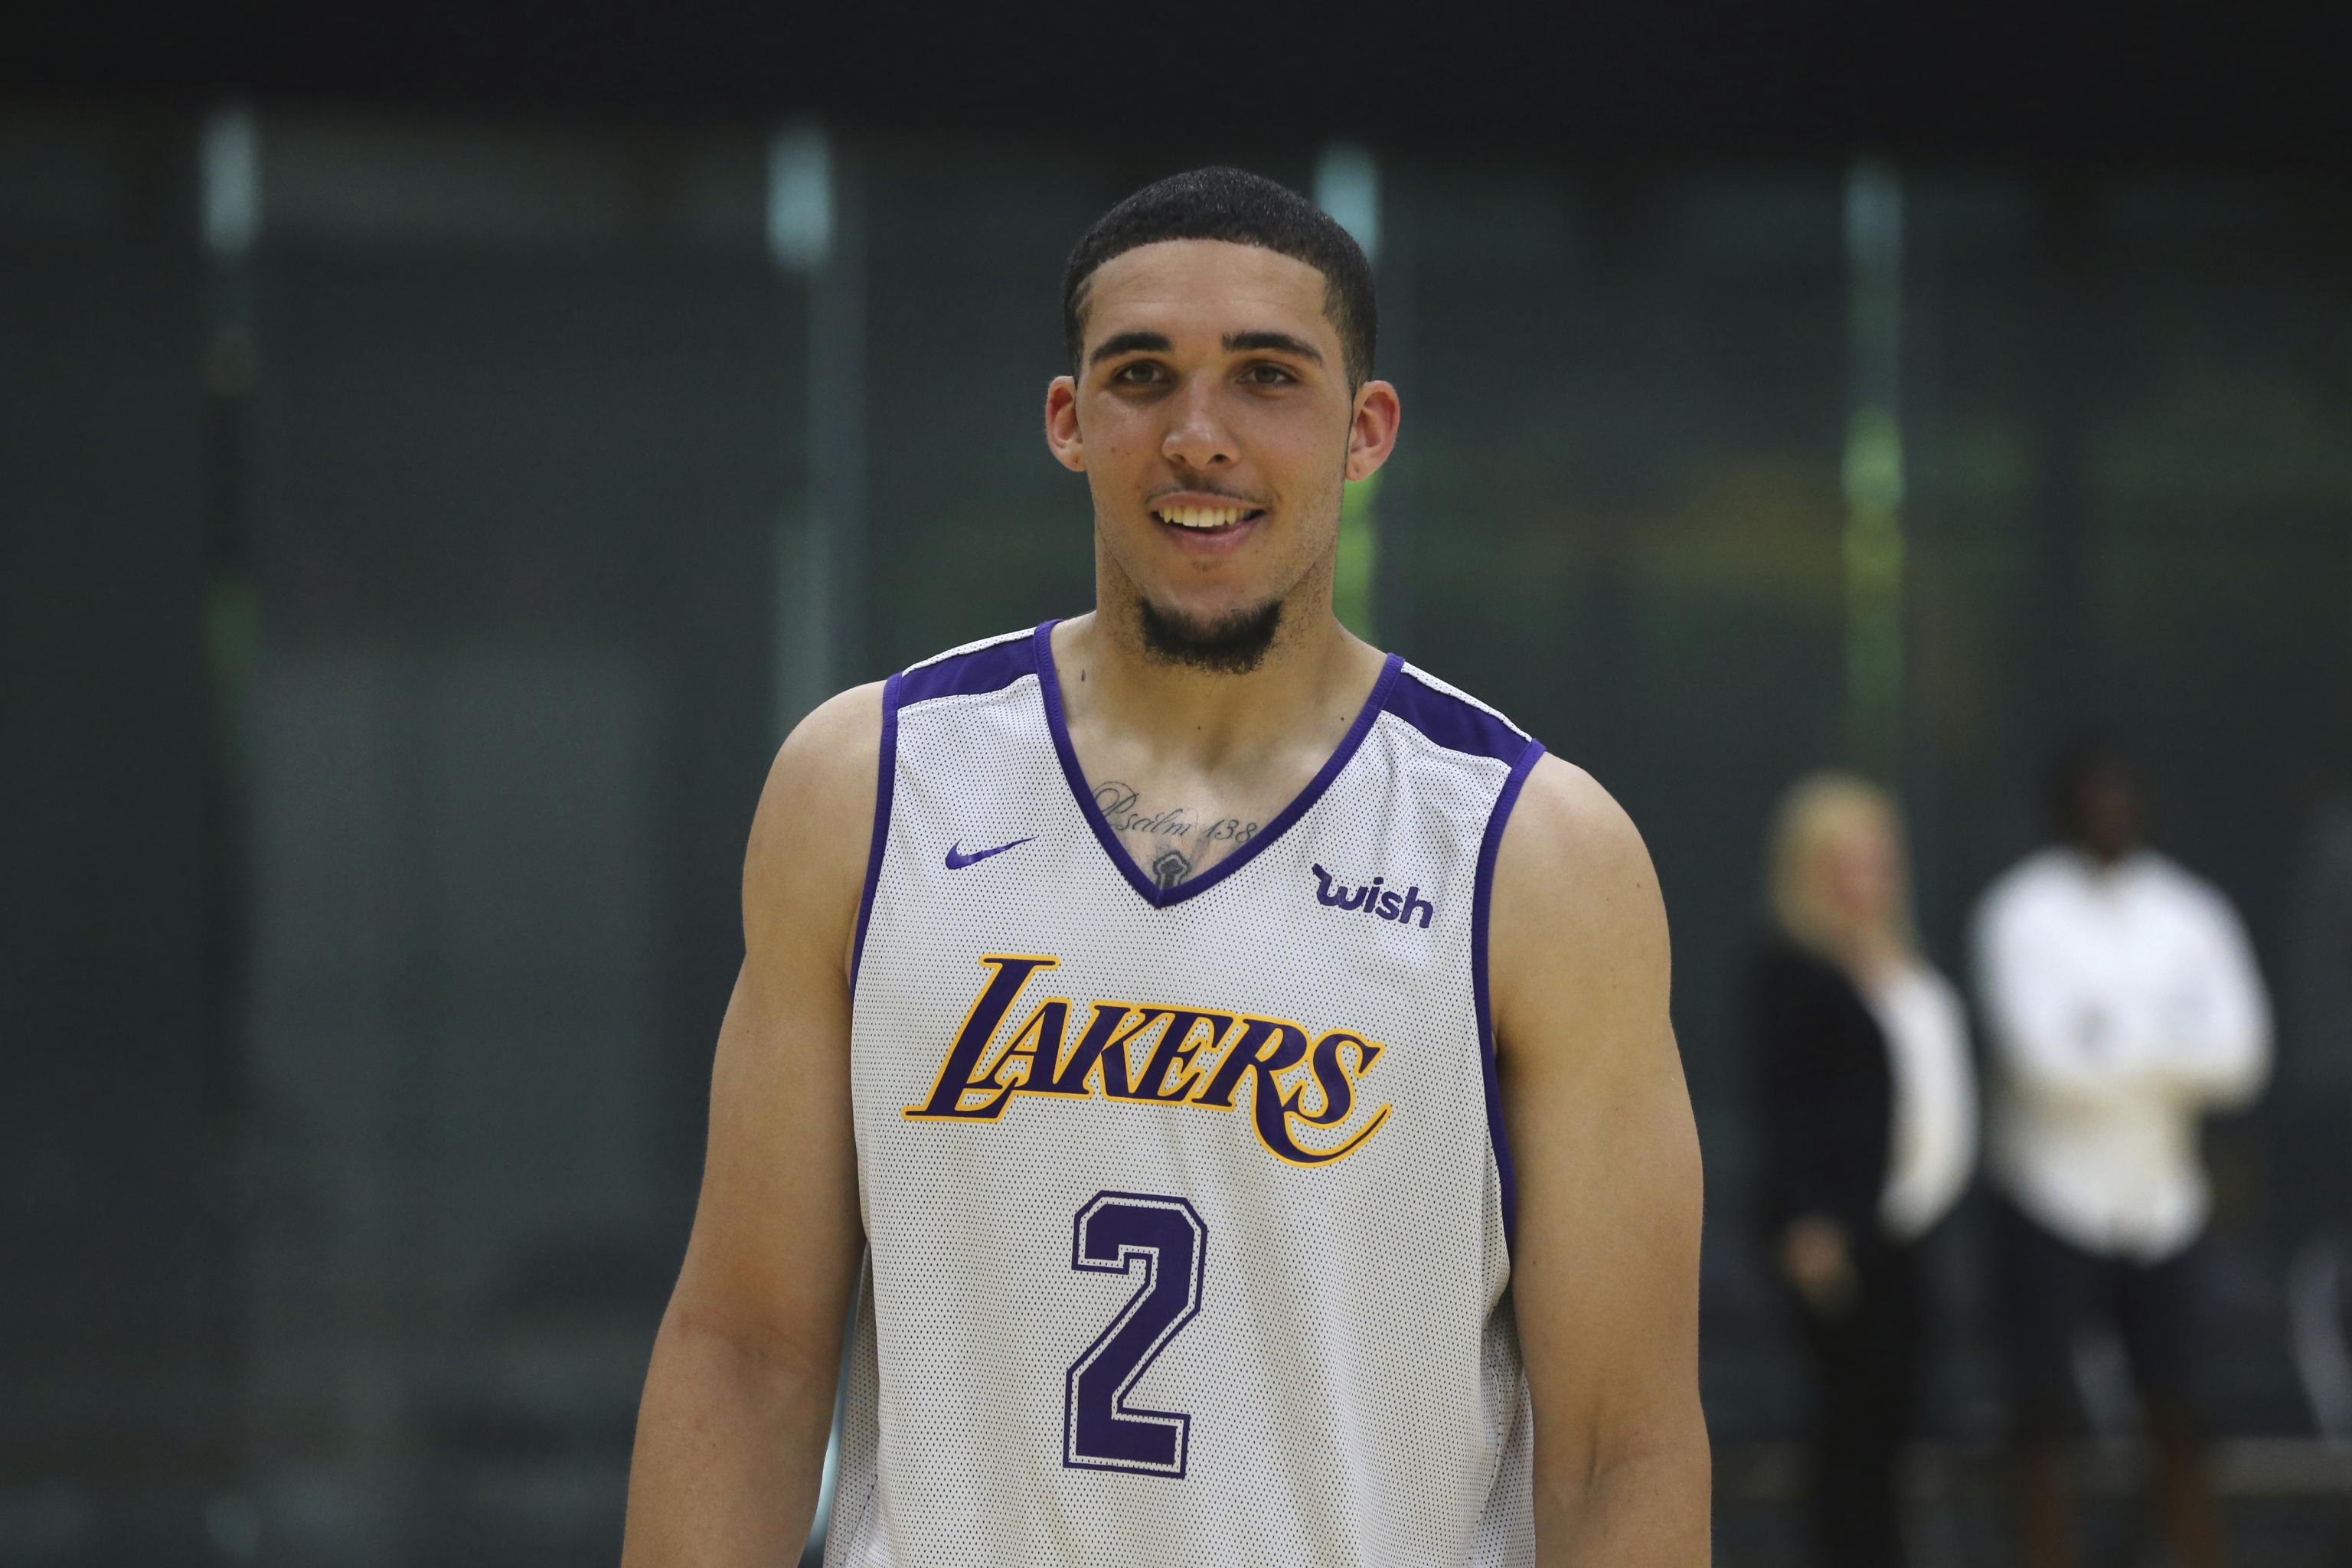 Liangelo Ball S T I Did Off The Court Was The Reason I Didn T Get Drafted Bleacher Report Latest News Videos And Highlights